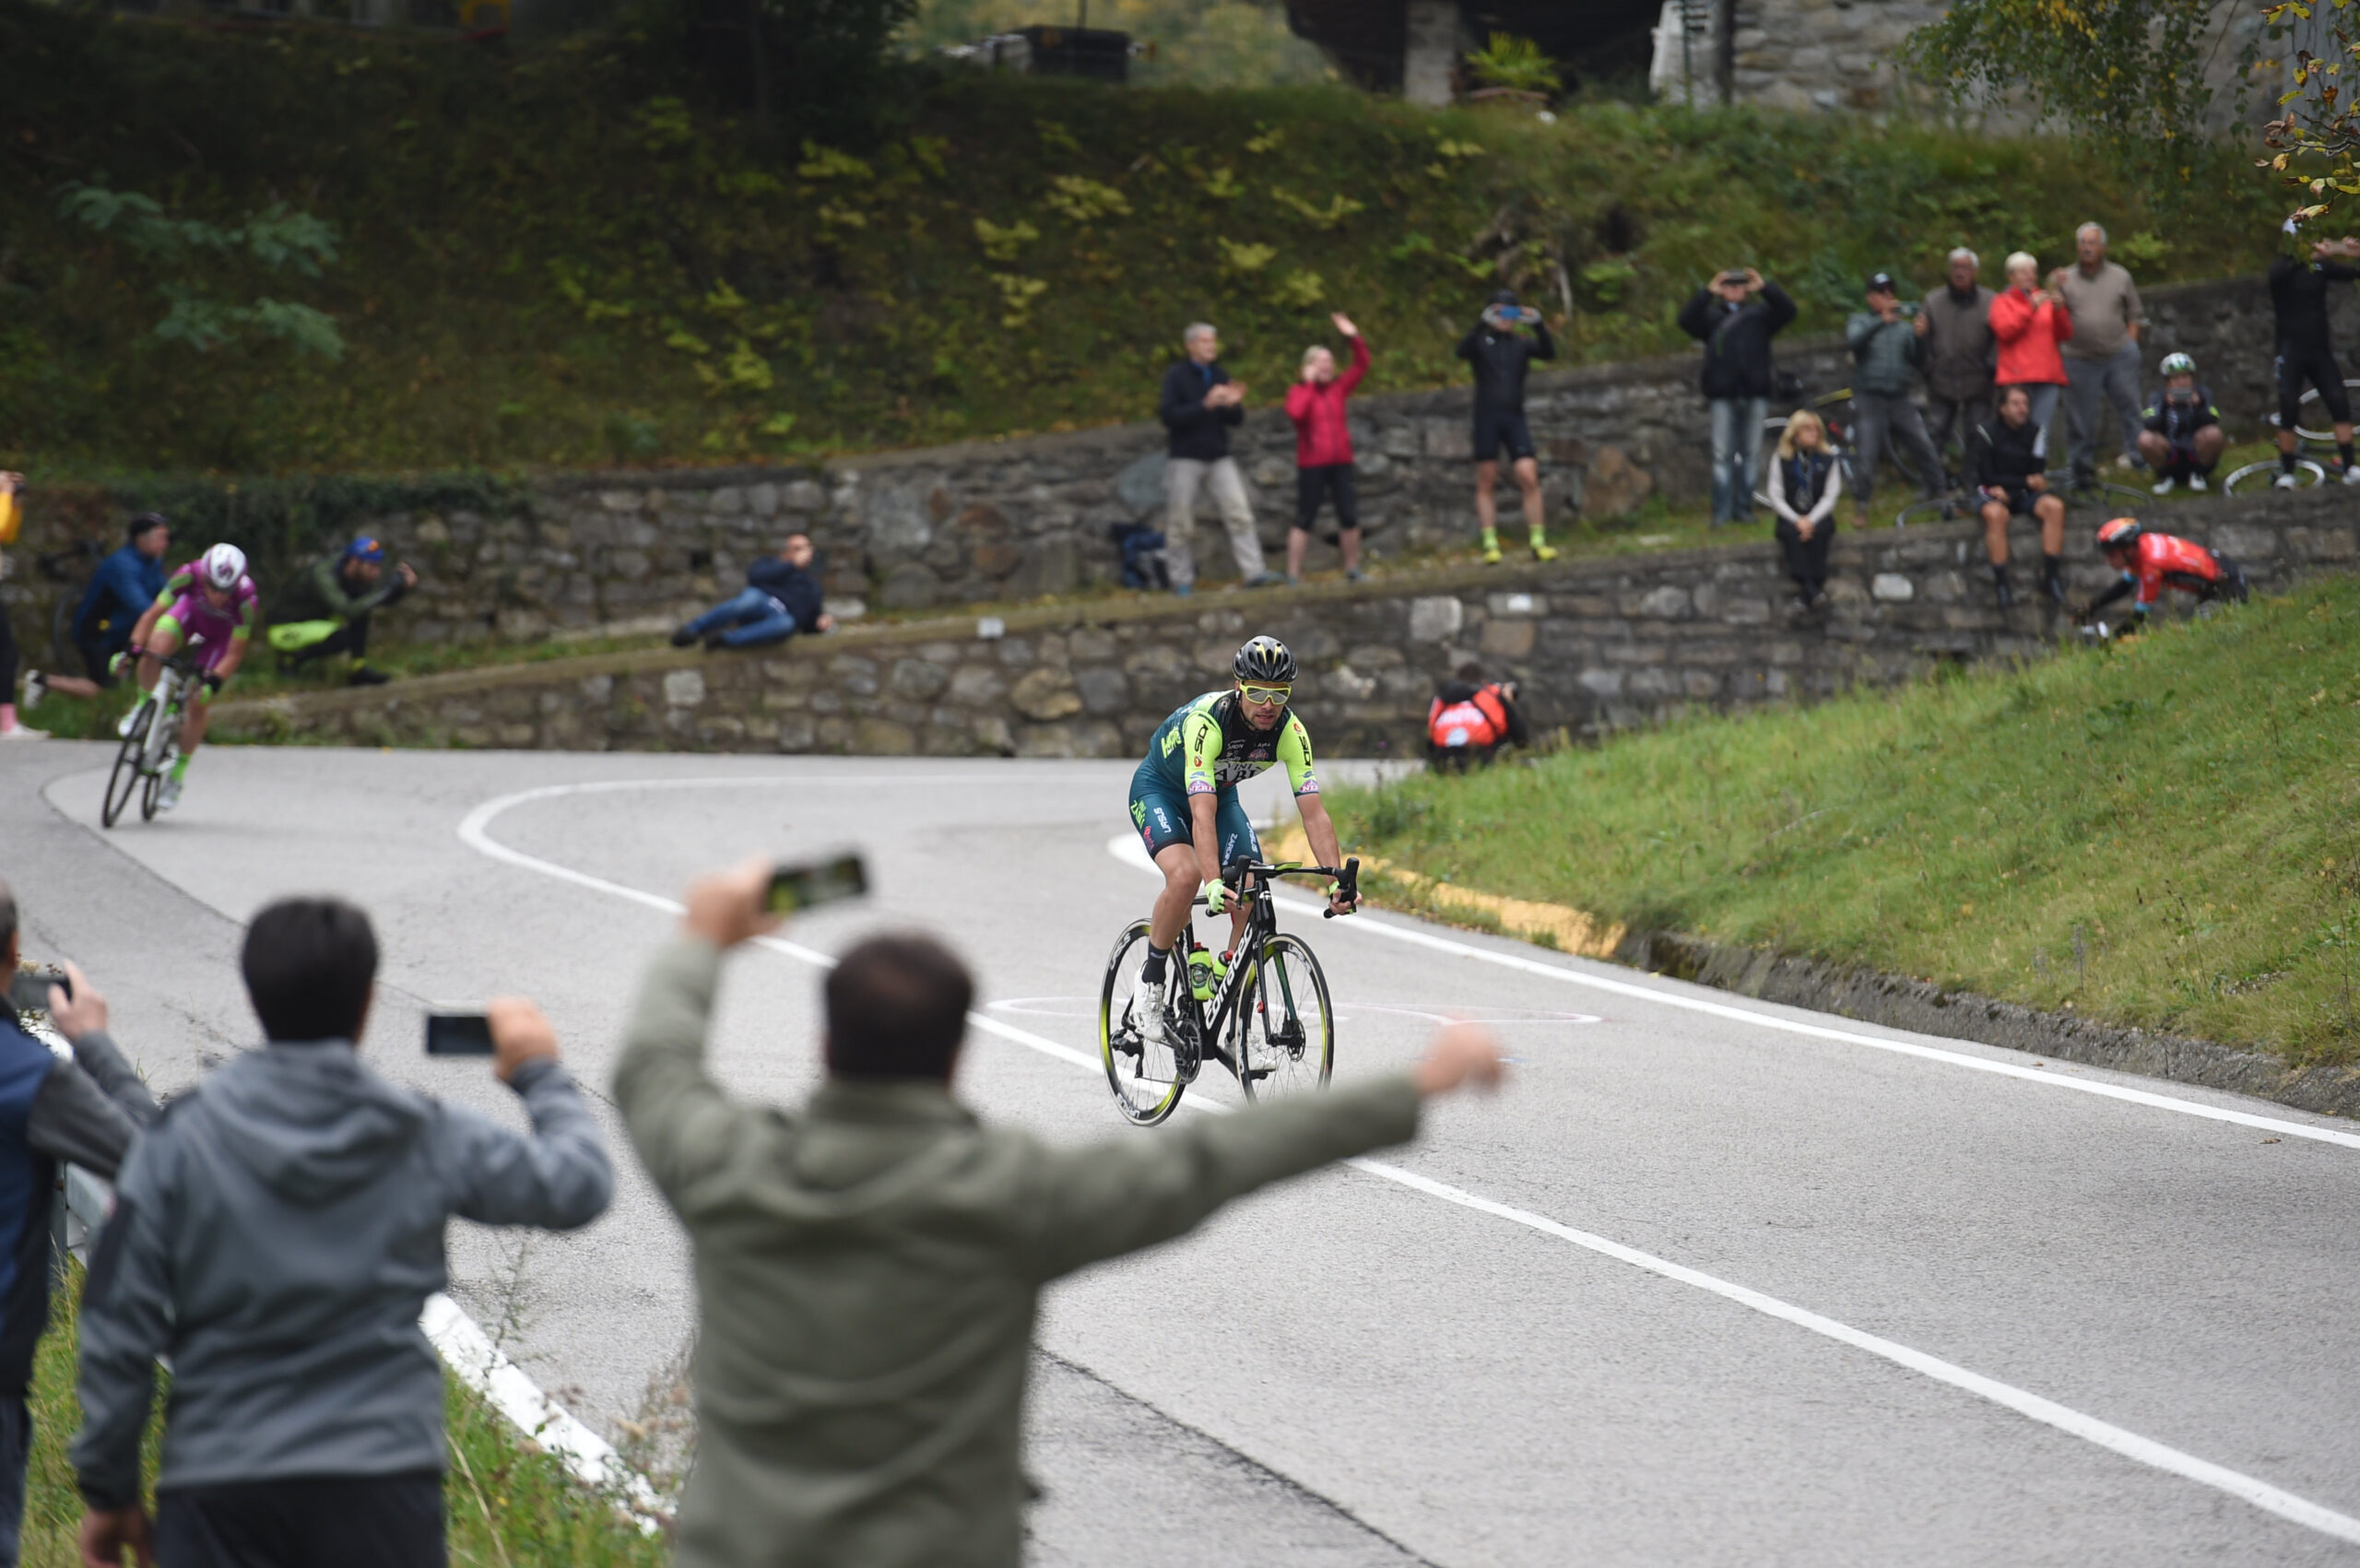 IL LOMBARDIA: A DAY ON THE ATTACK FOR DAVIDE ORRICO